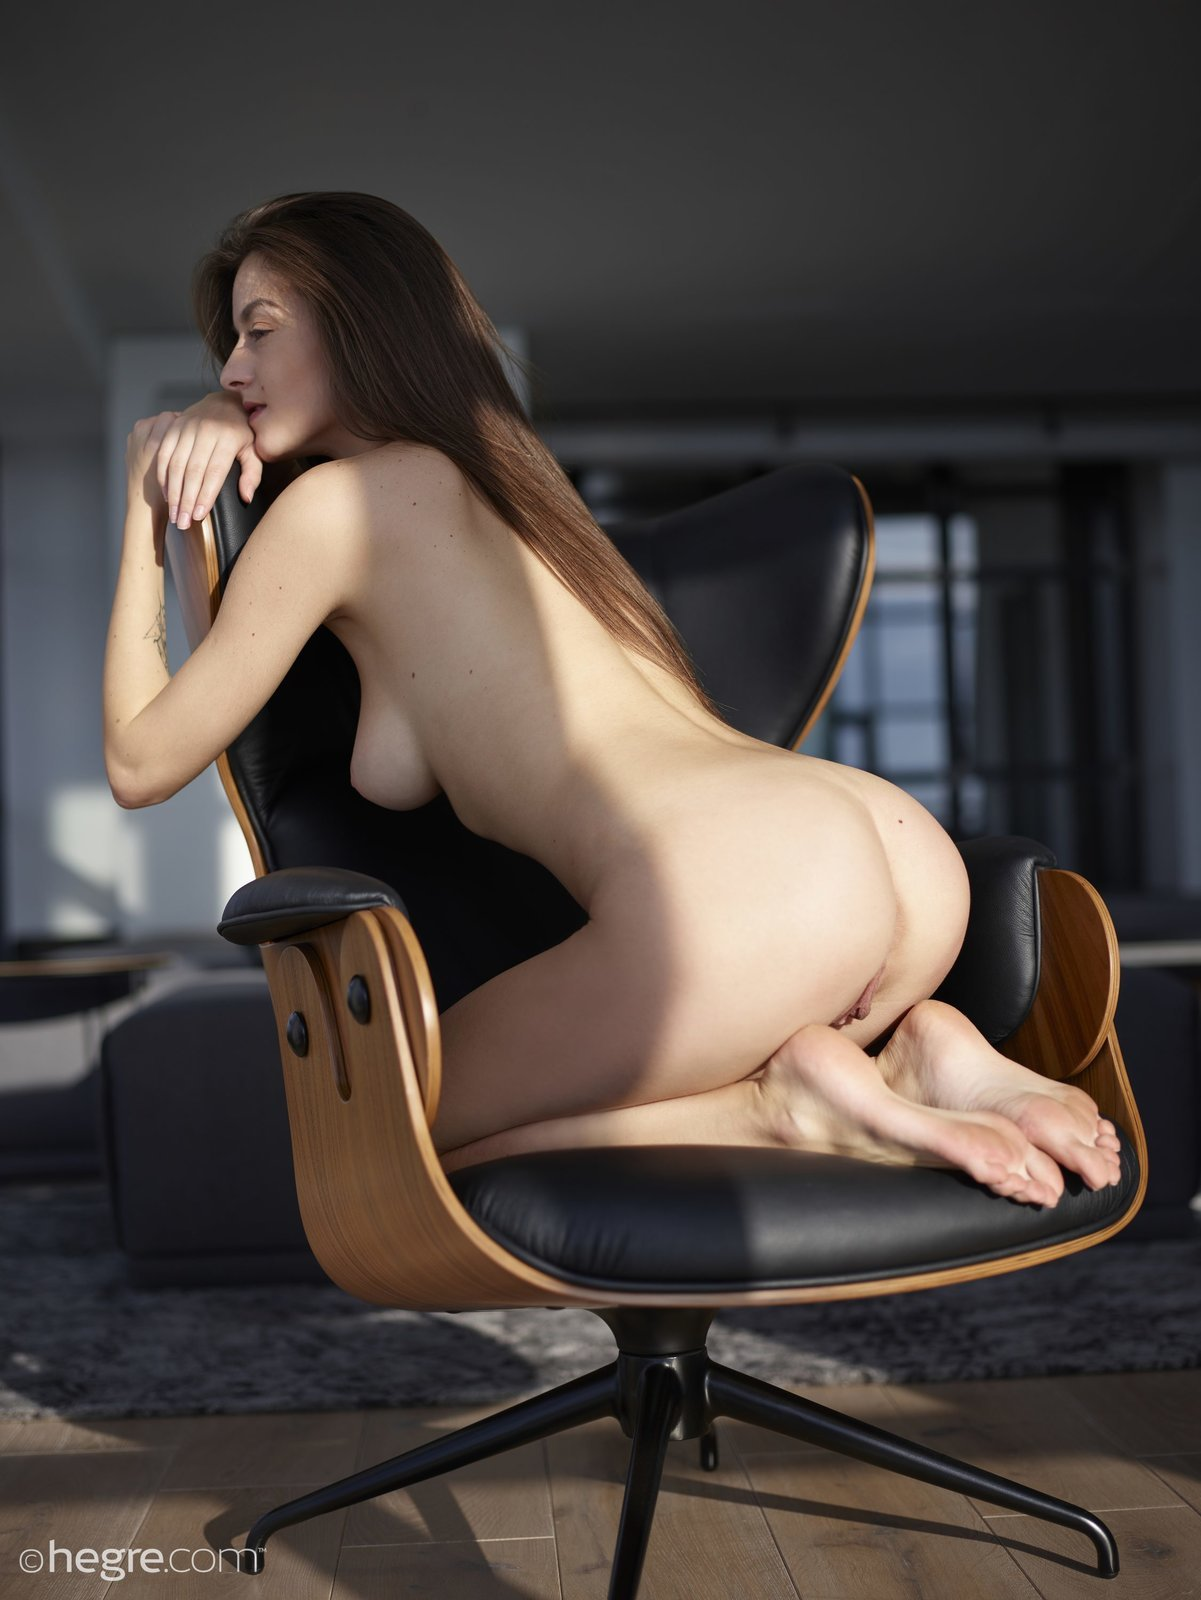 Nude woman on a chair, girls workout nude